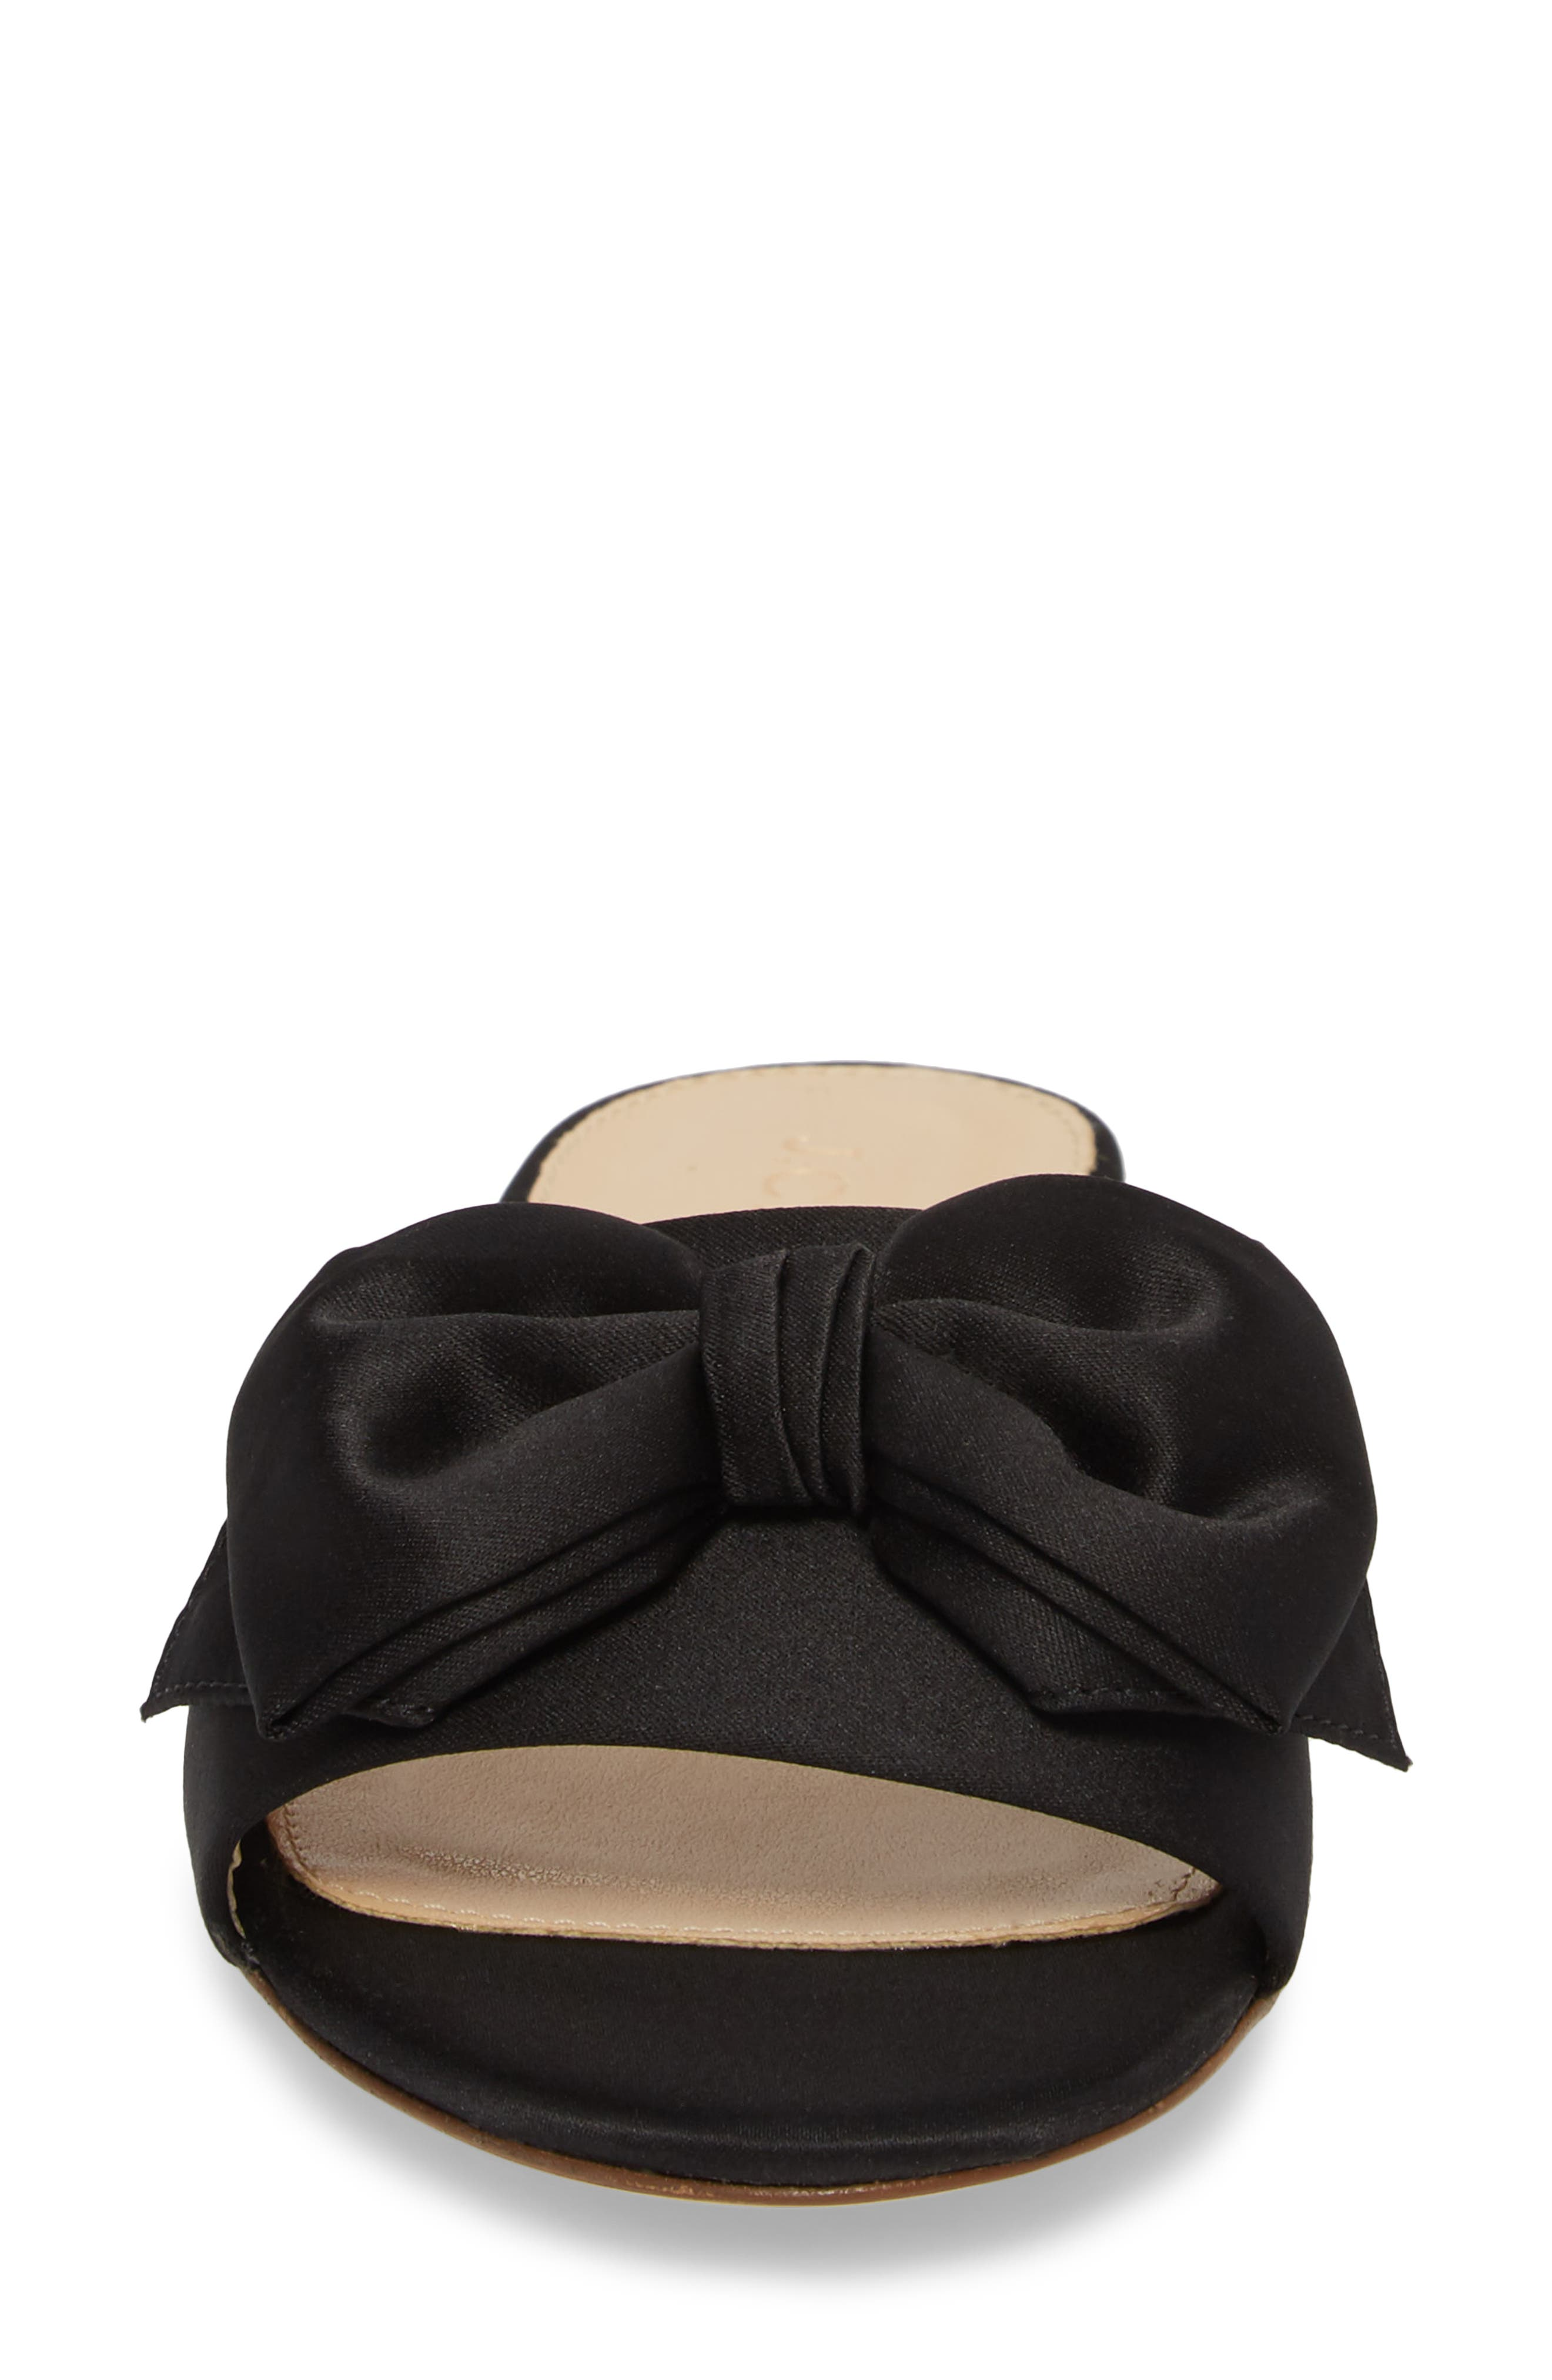 Knotted Satin Bow Slide,                             Alternate thumbnail 4, color,                             001